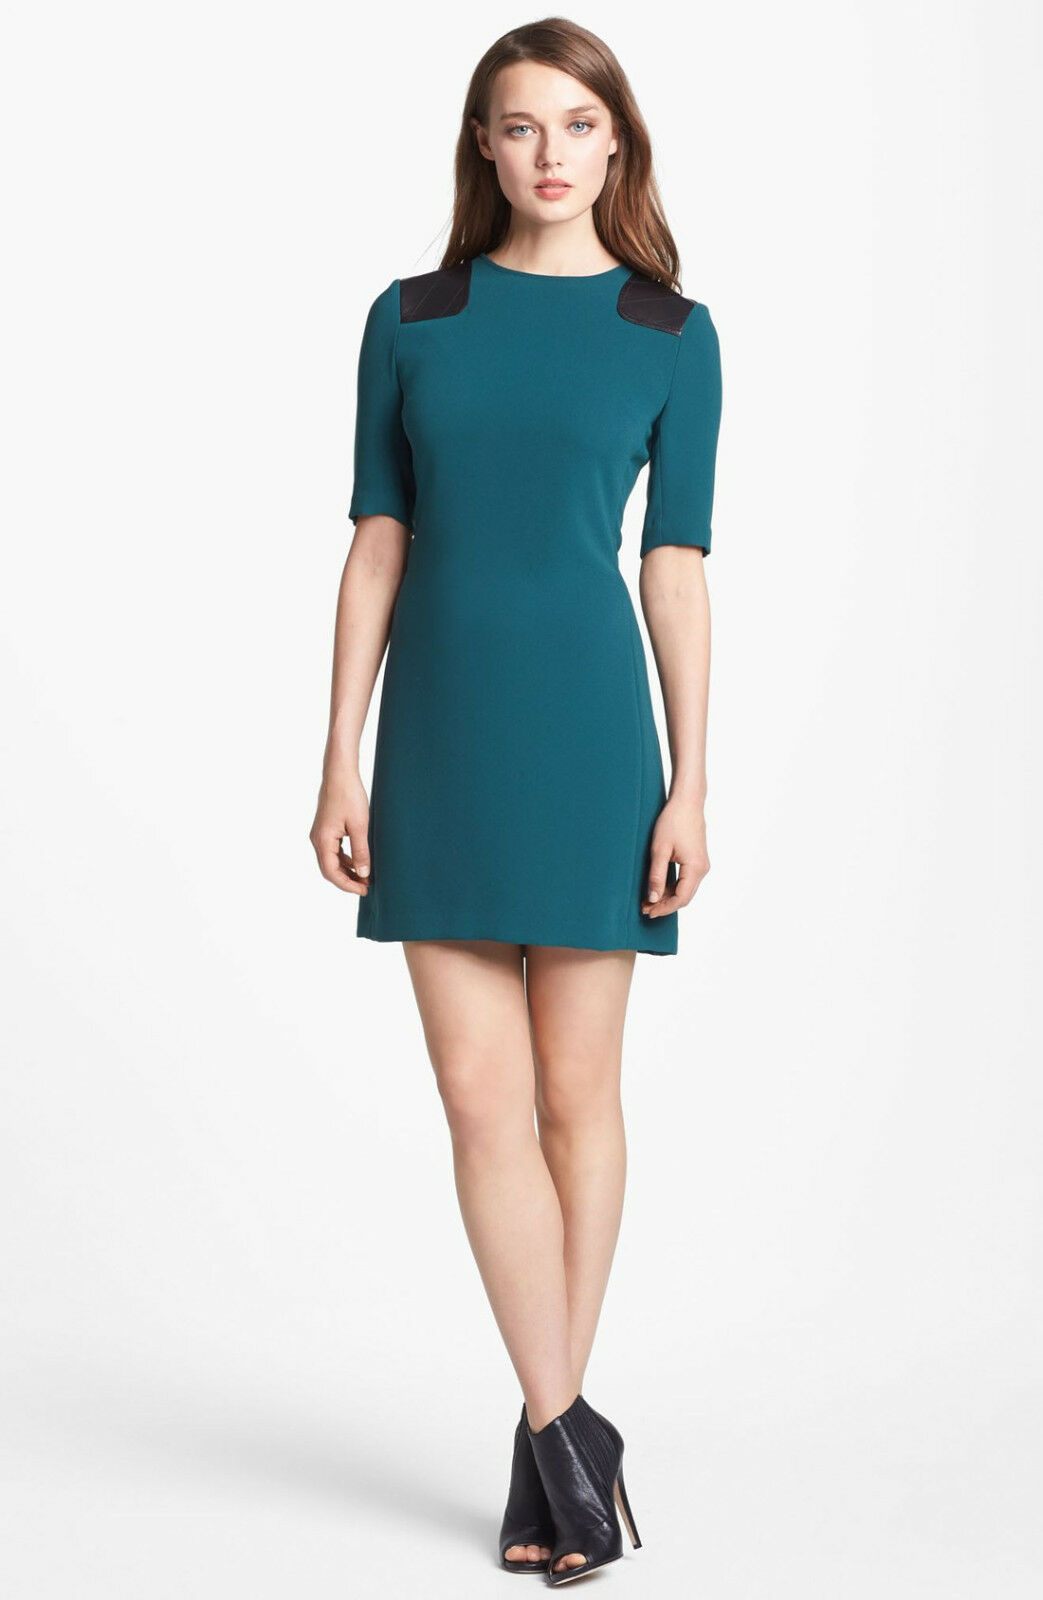 MARC by MARC JACOBS Teal Goblet Dress Short Sleeve Shift Mini Leather Caps